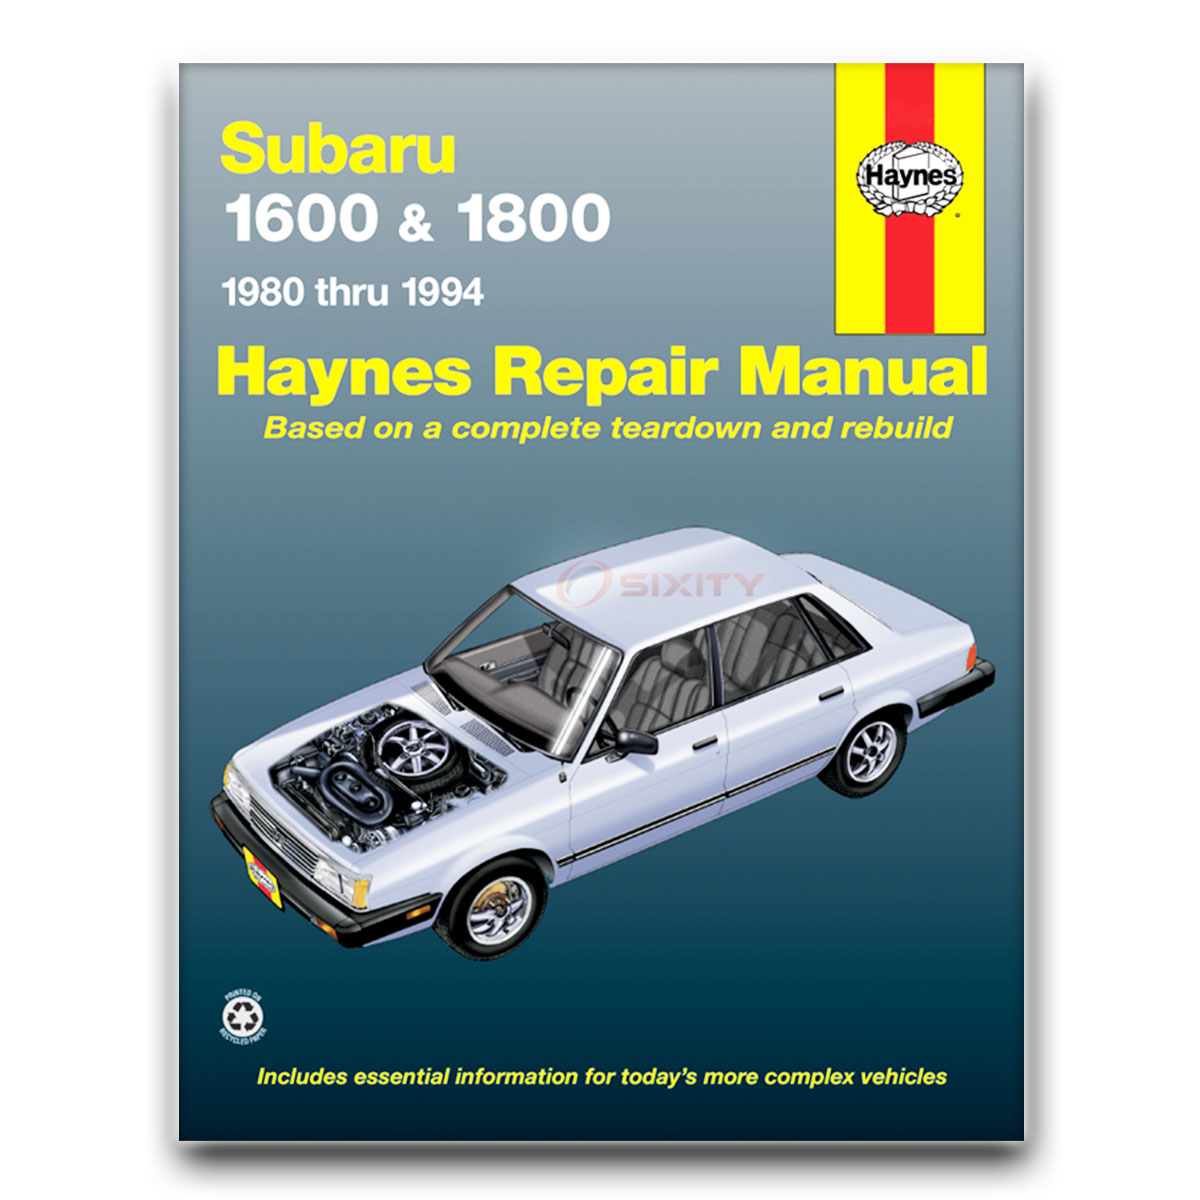 Haynes Repair Manual for Subaru Loyale Base RS Turbo Shop Service Garage  Boo sn